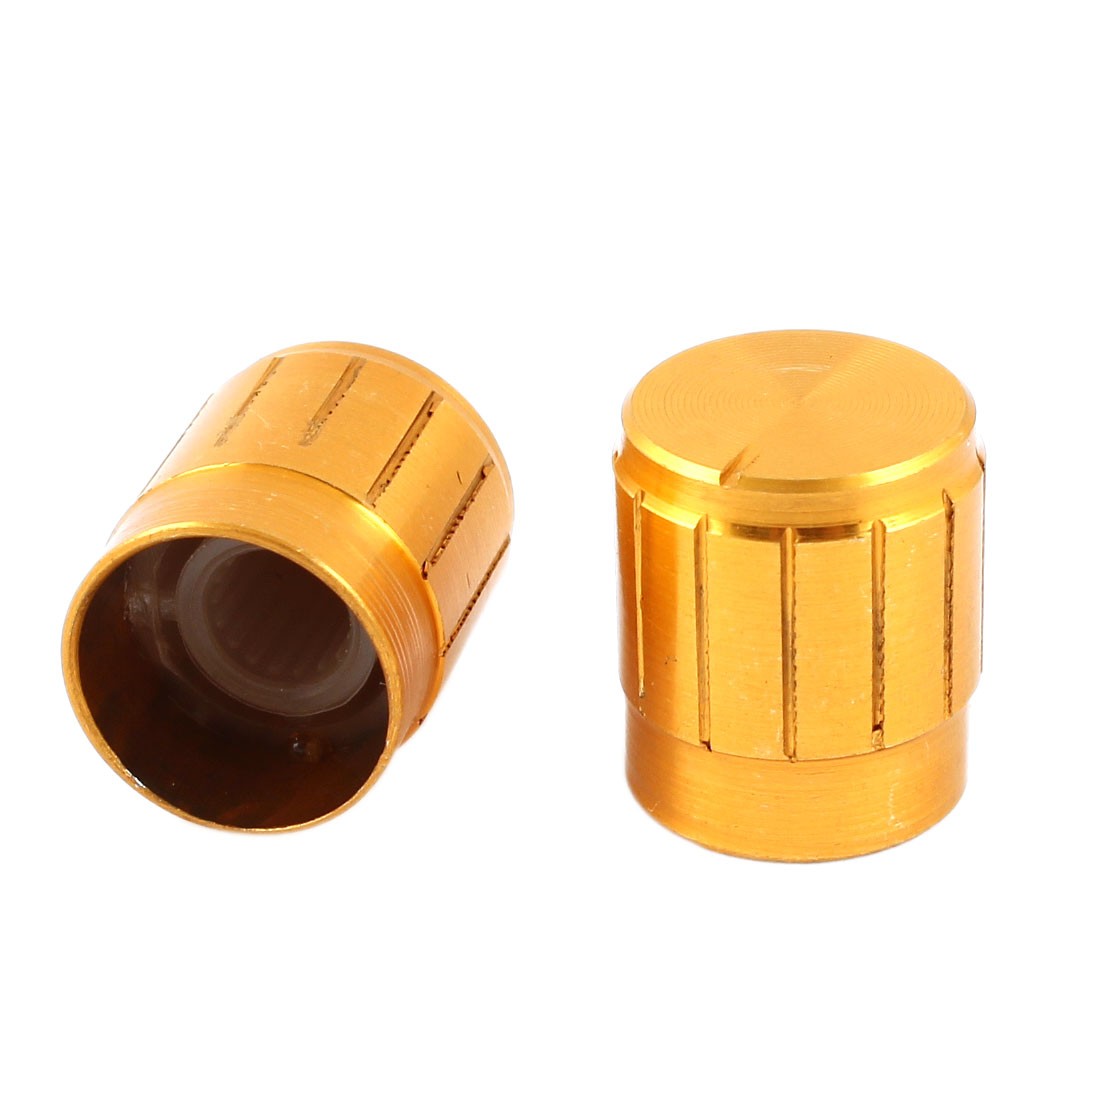 2 Pcs Gold Tone Volume Control Rotary Aluminum Potentiometer Knobs 15mm x 17mm